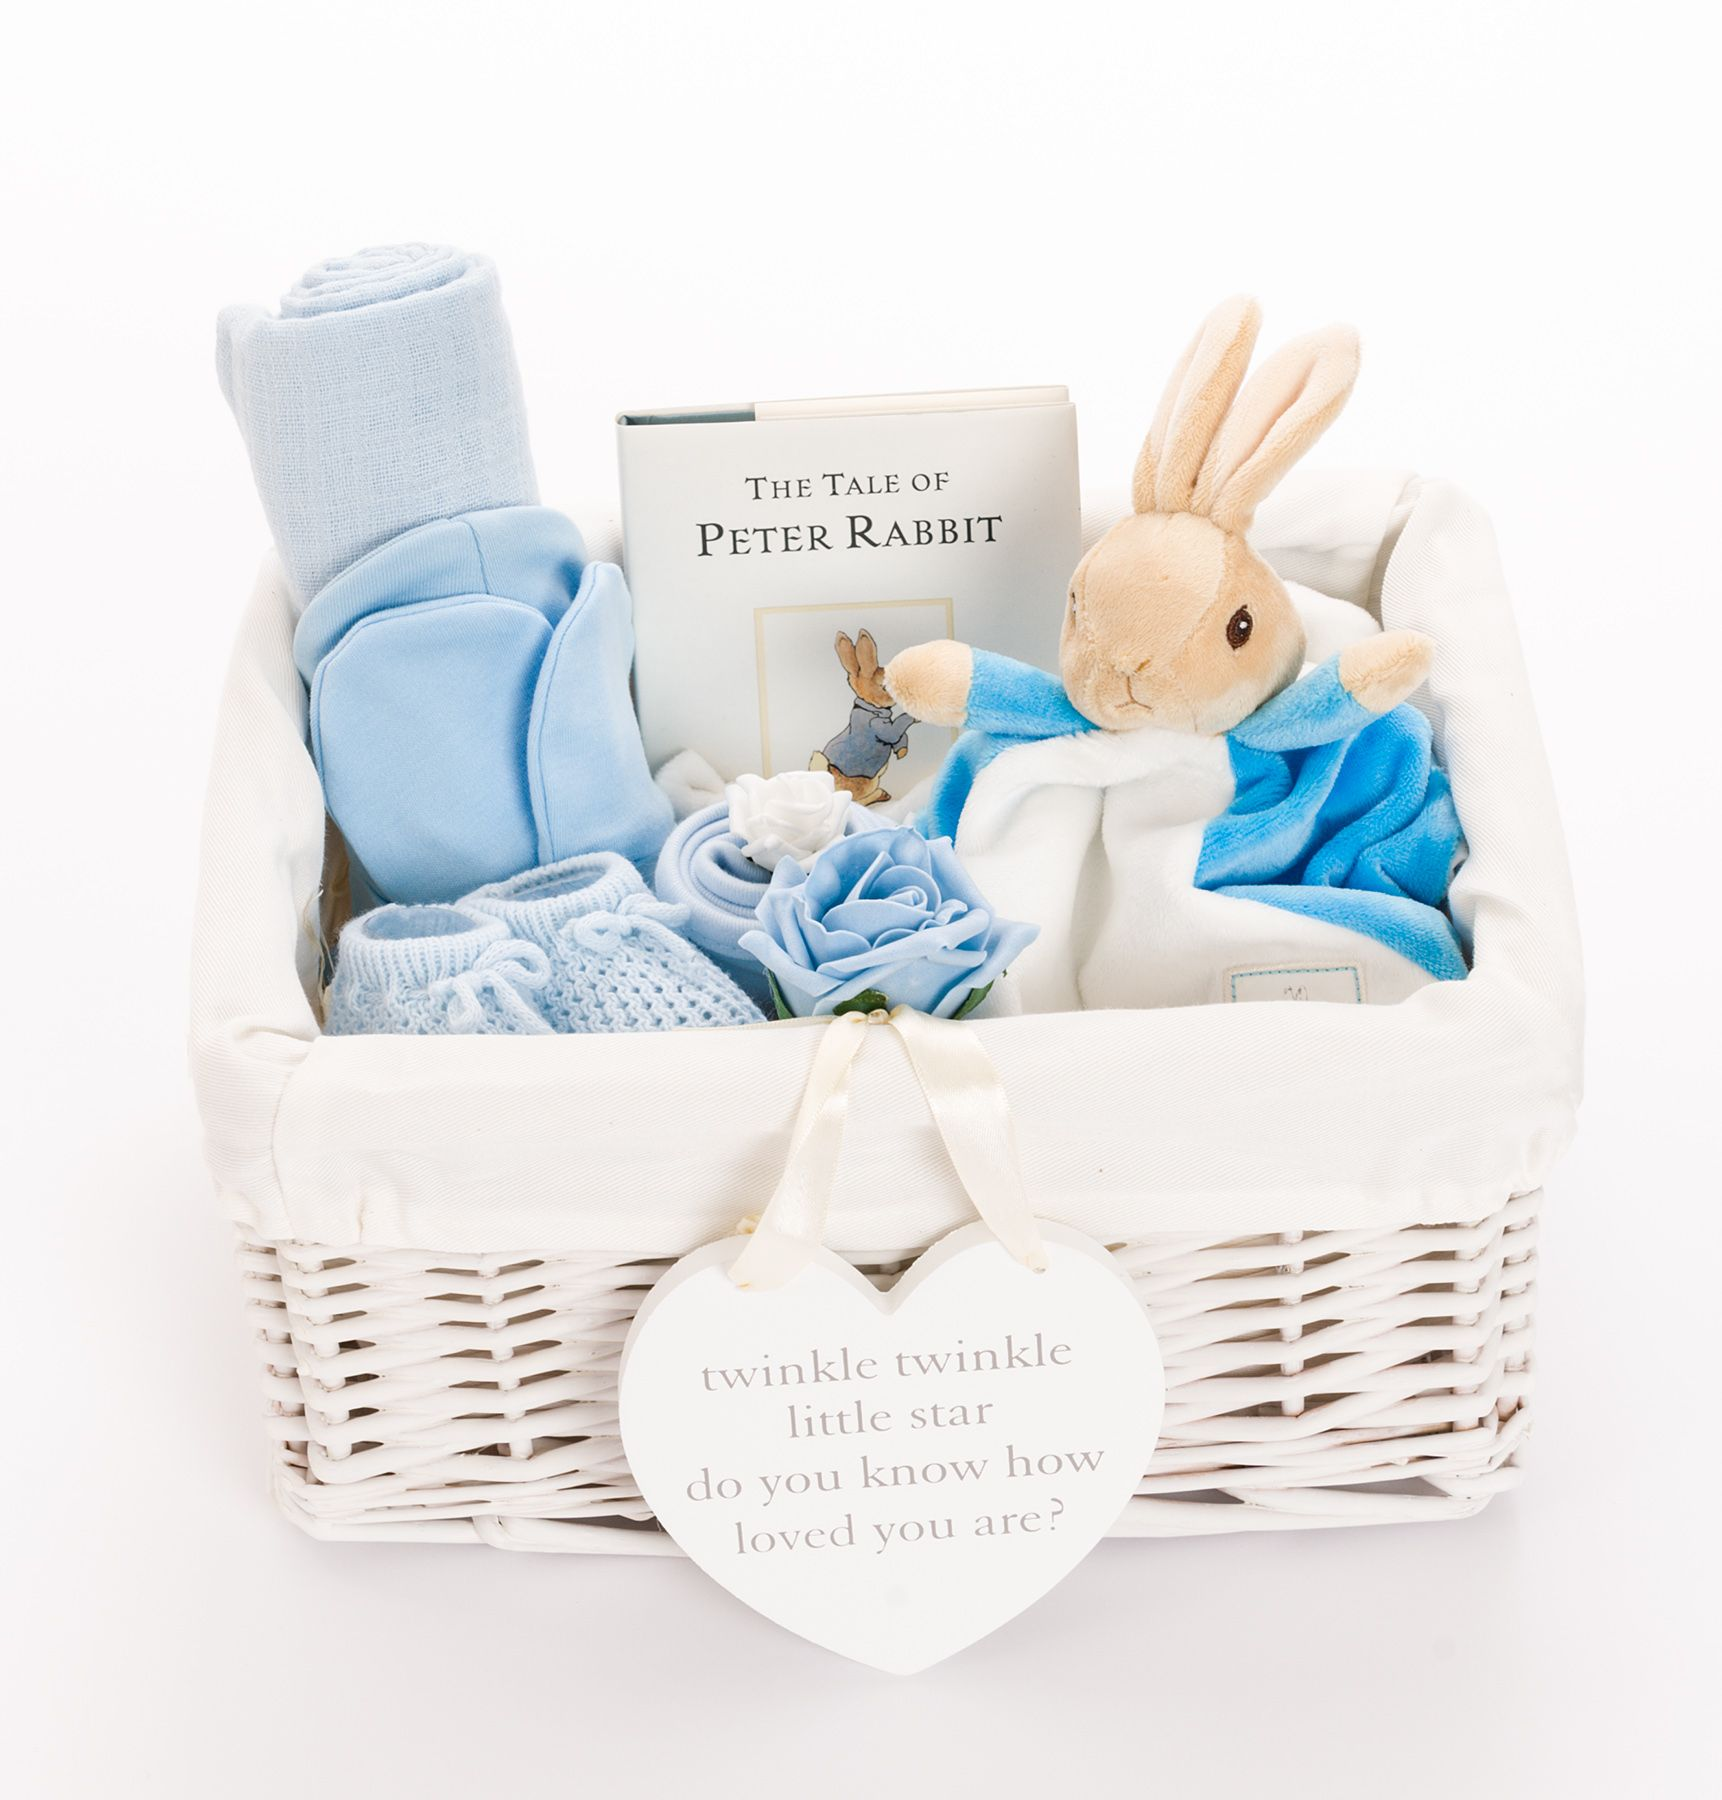 73d2309214cc Peter Rabbit Baby Boy Hamper. Our Peter Rabbit themed baby hamper makes a  perfect basket of gifts to welcome a newborn baby boy. This beautiful hamper  will ...